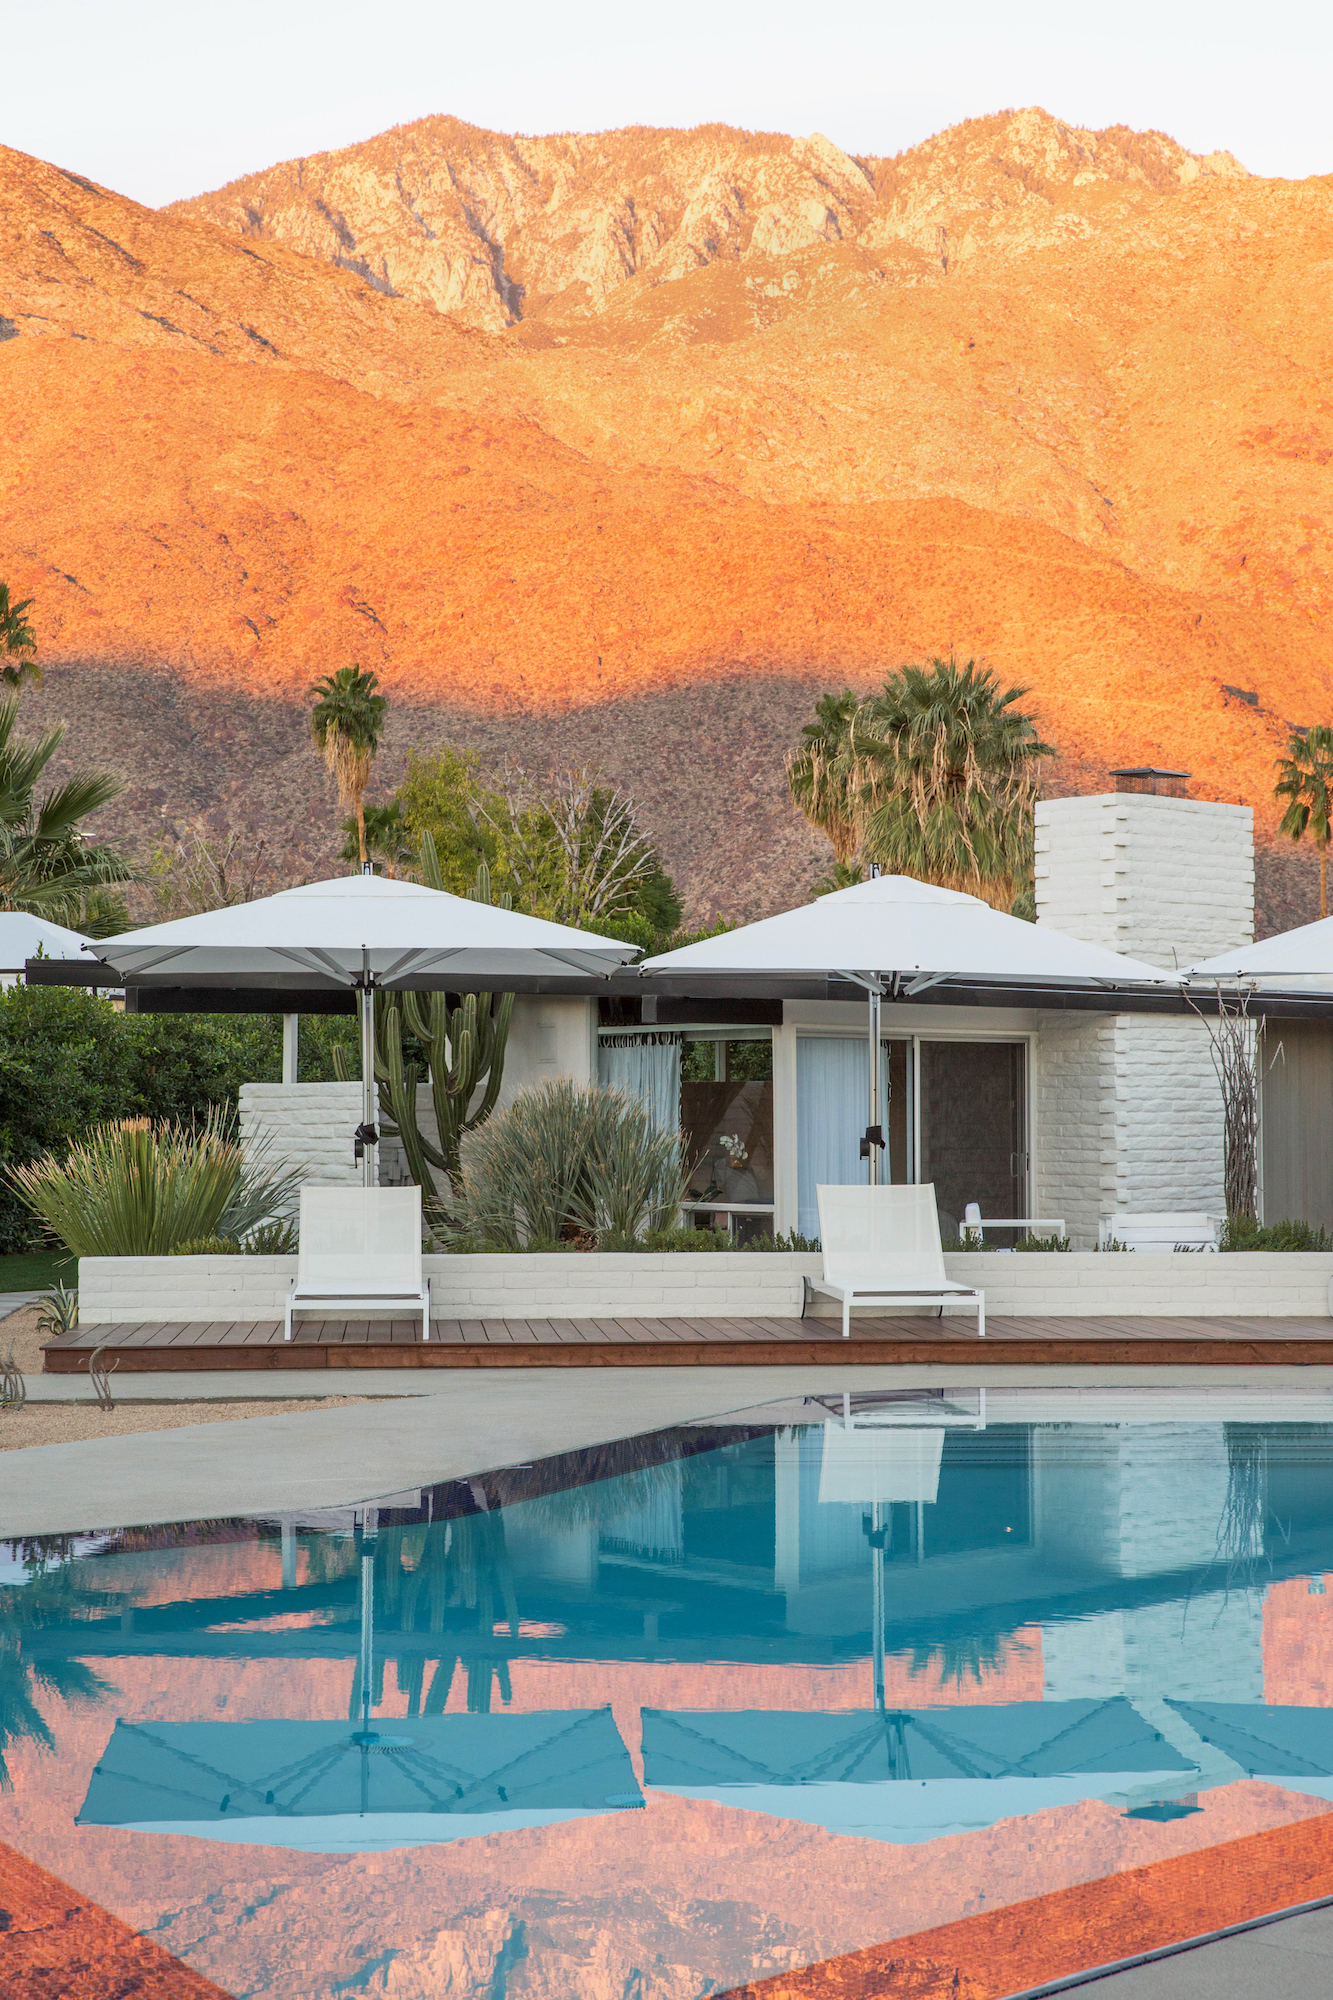 Palm springs the perfect vintage shopping day trip from for Design hotel palm springs